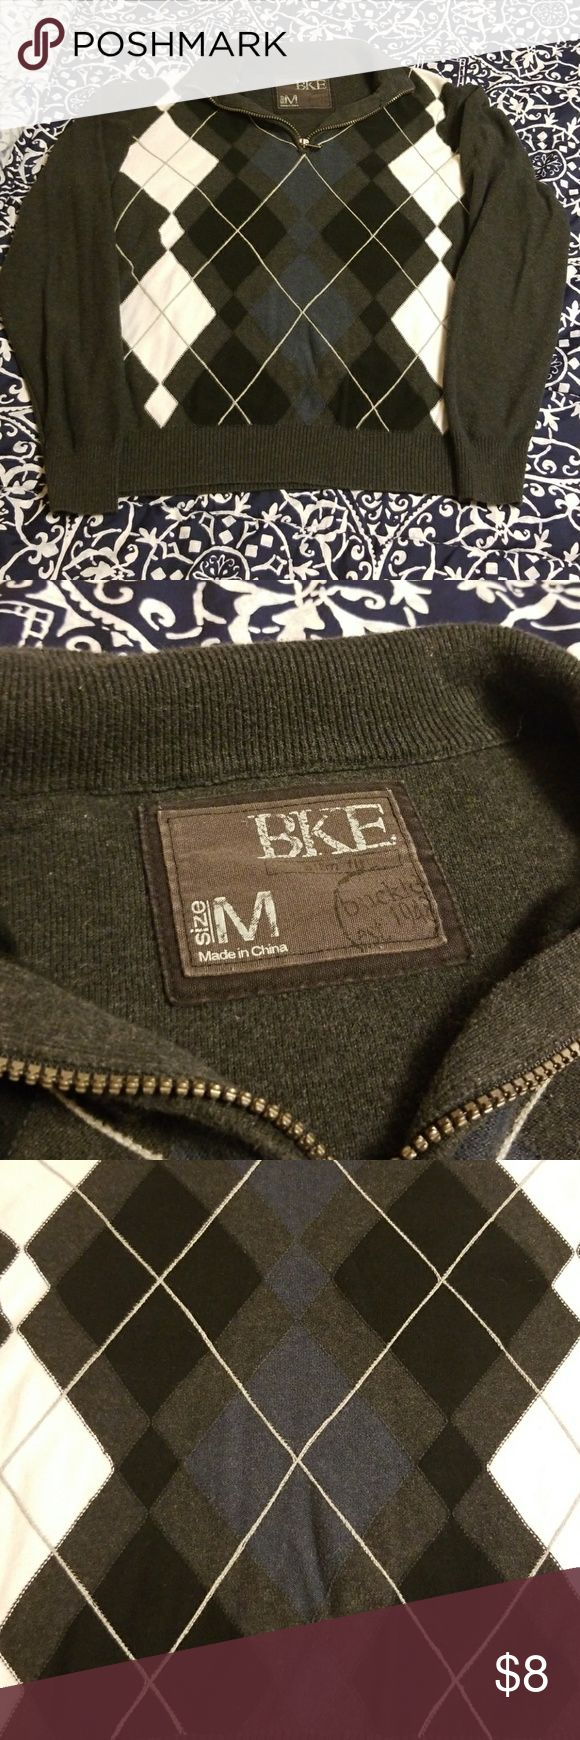 BKE men's half zip argyle sweater Good used condition. Lightweight and good for layering and as a seasonal transition piece. Zipper is in great working condition as well. BKE Sweaters Zip Up